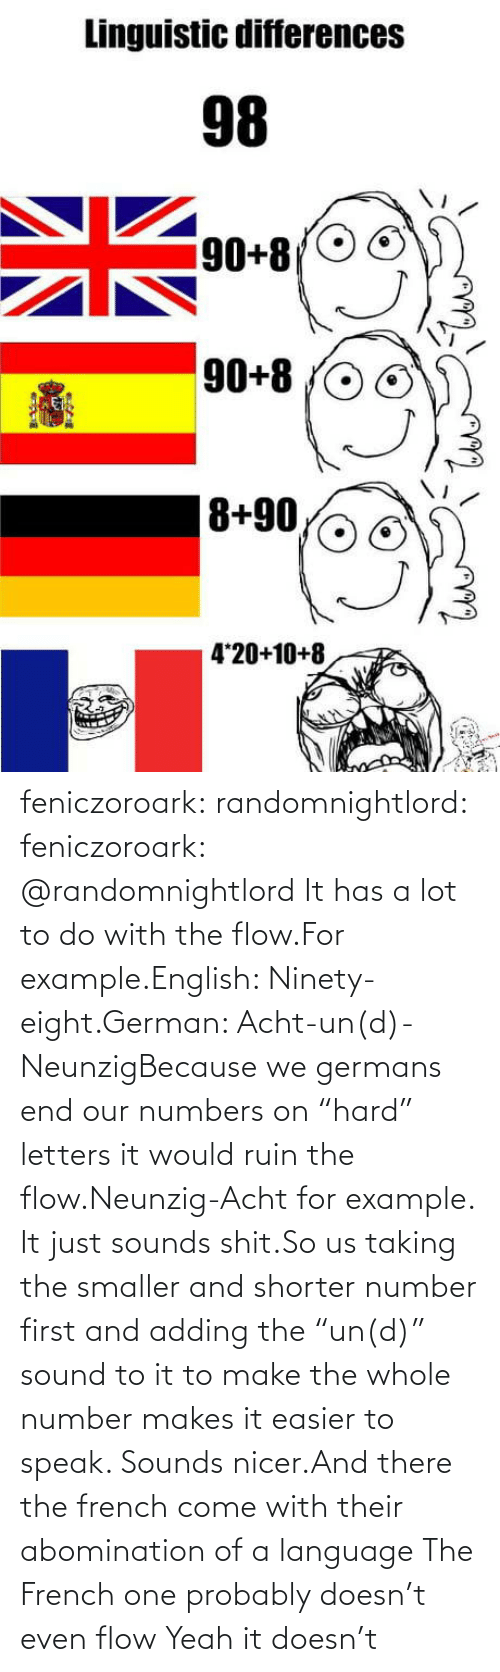 "French: feniczoroark:  randomnightlord:  feniczoroark:  @randomnightlord    It has a lot to do with the flow.For example.English: Ninety-eight.German: Acht-un(d)-NeunzigBecause we germans end our numbers on ""hard"" letters it would ruin the flow.Neunzig-Acht for example. It just sounds shit.So us taking the smaller and shorter number first and adding the ""un(d)"" sound to it to make the whole number makes it easier to speak. Sounds nicer.And there the french come with their abomination of a language    The French one probably doesn't even flow   Yeah it doesn't"